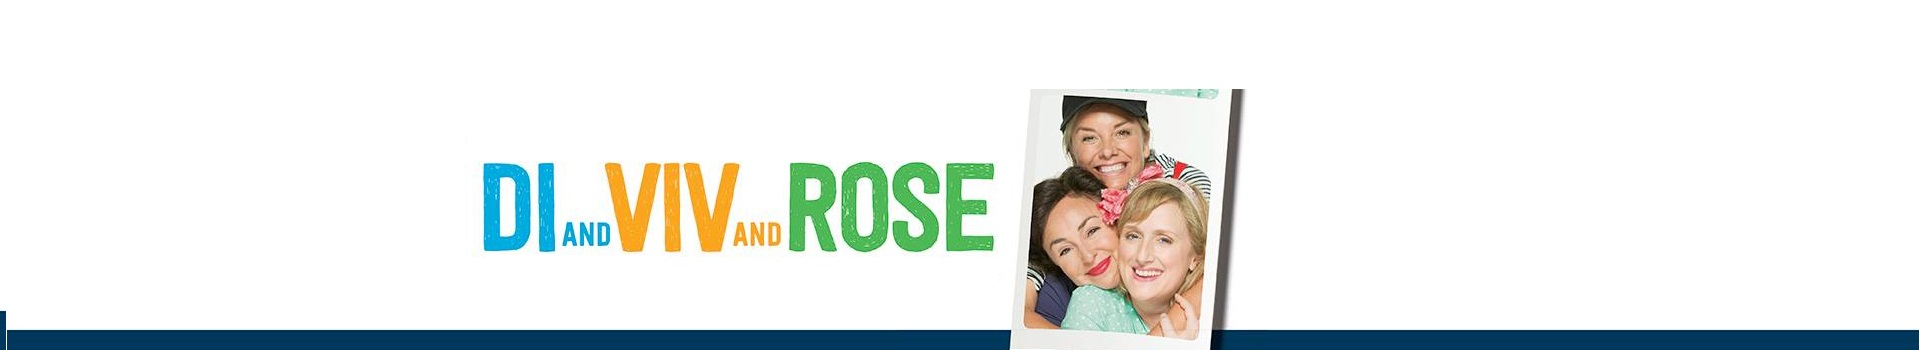 Di And Viv And Rose banner image